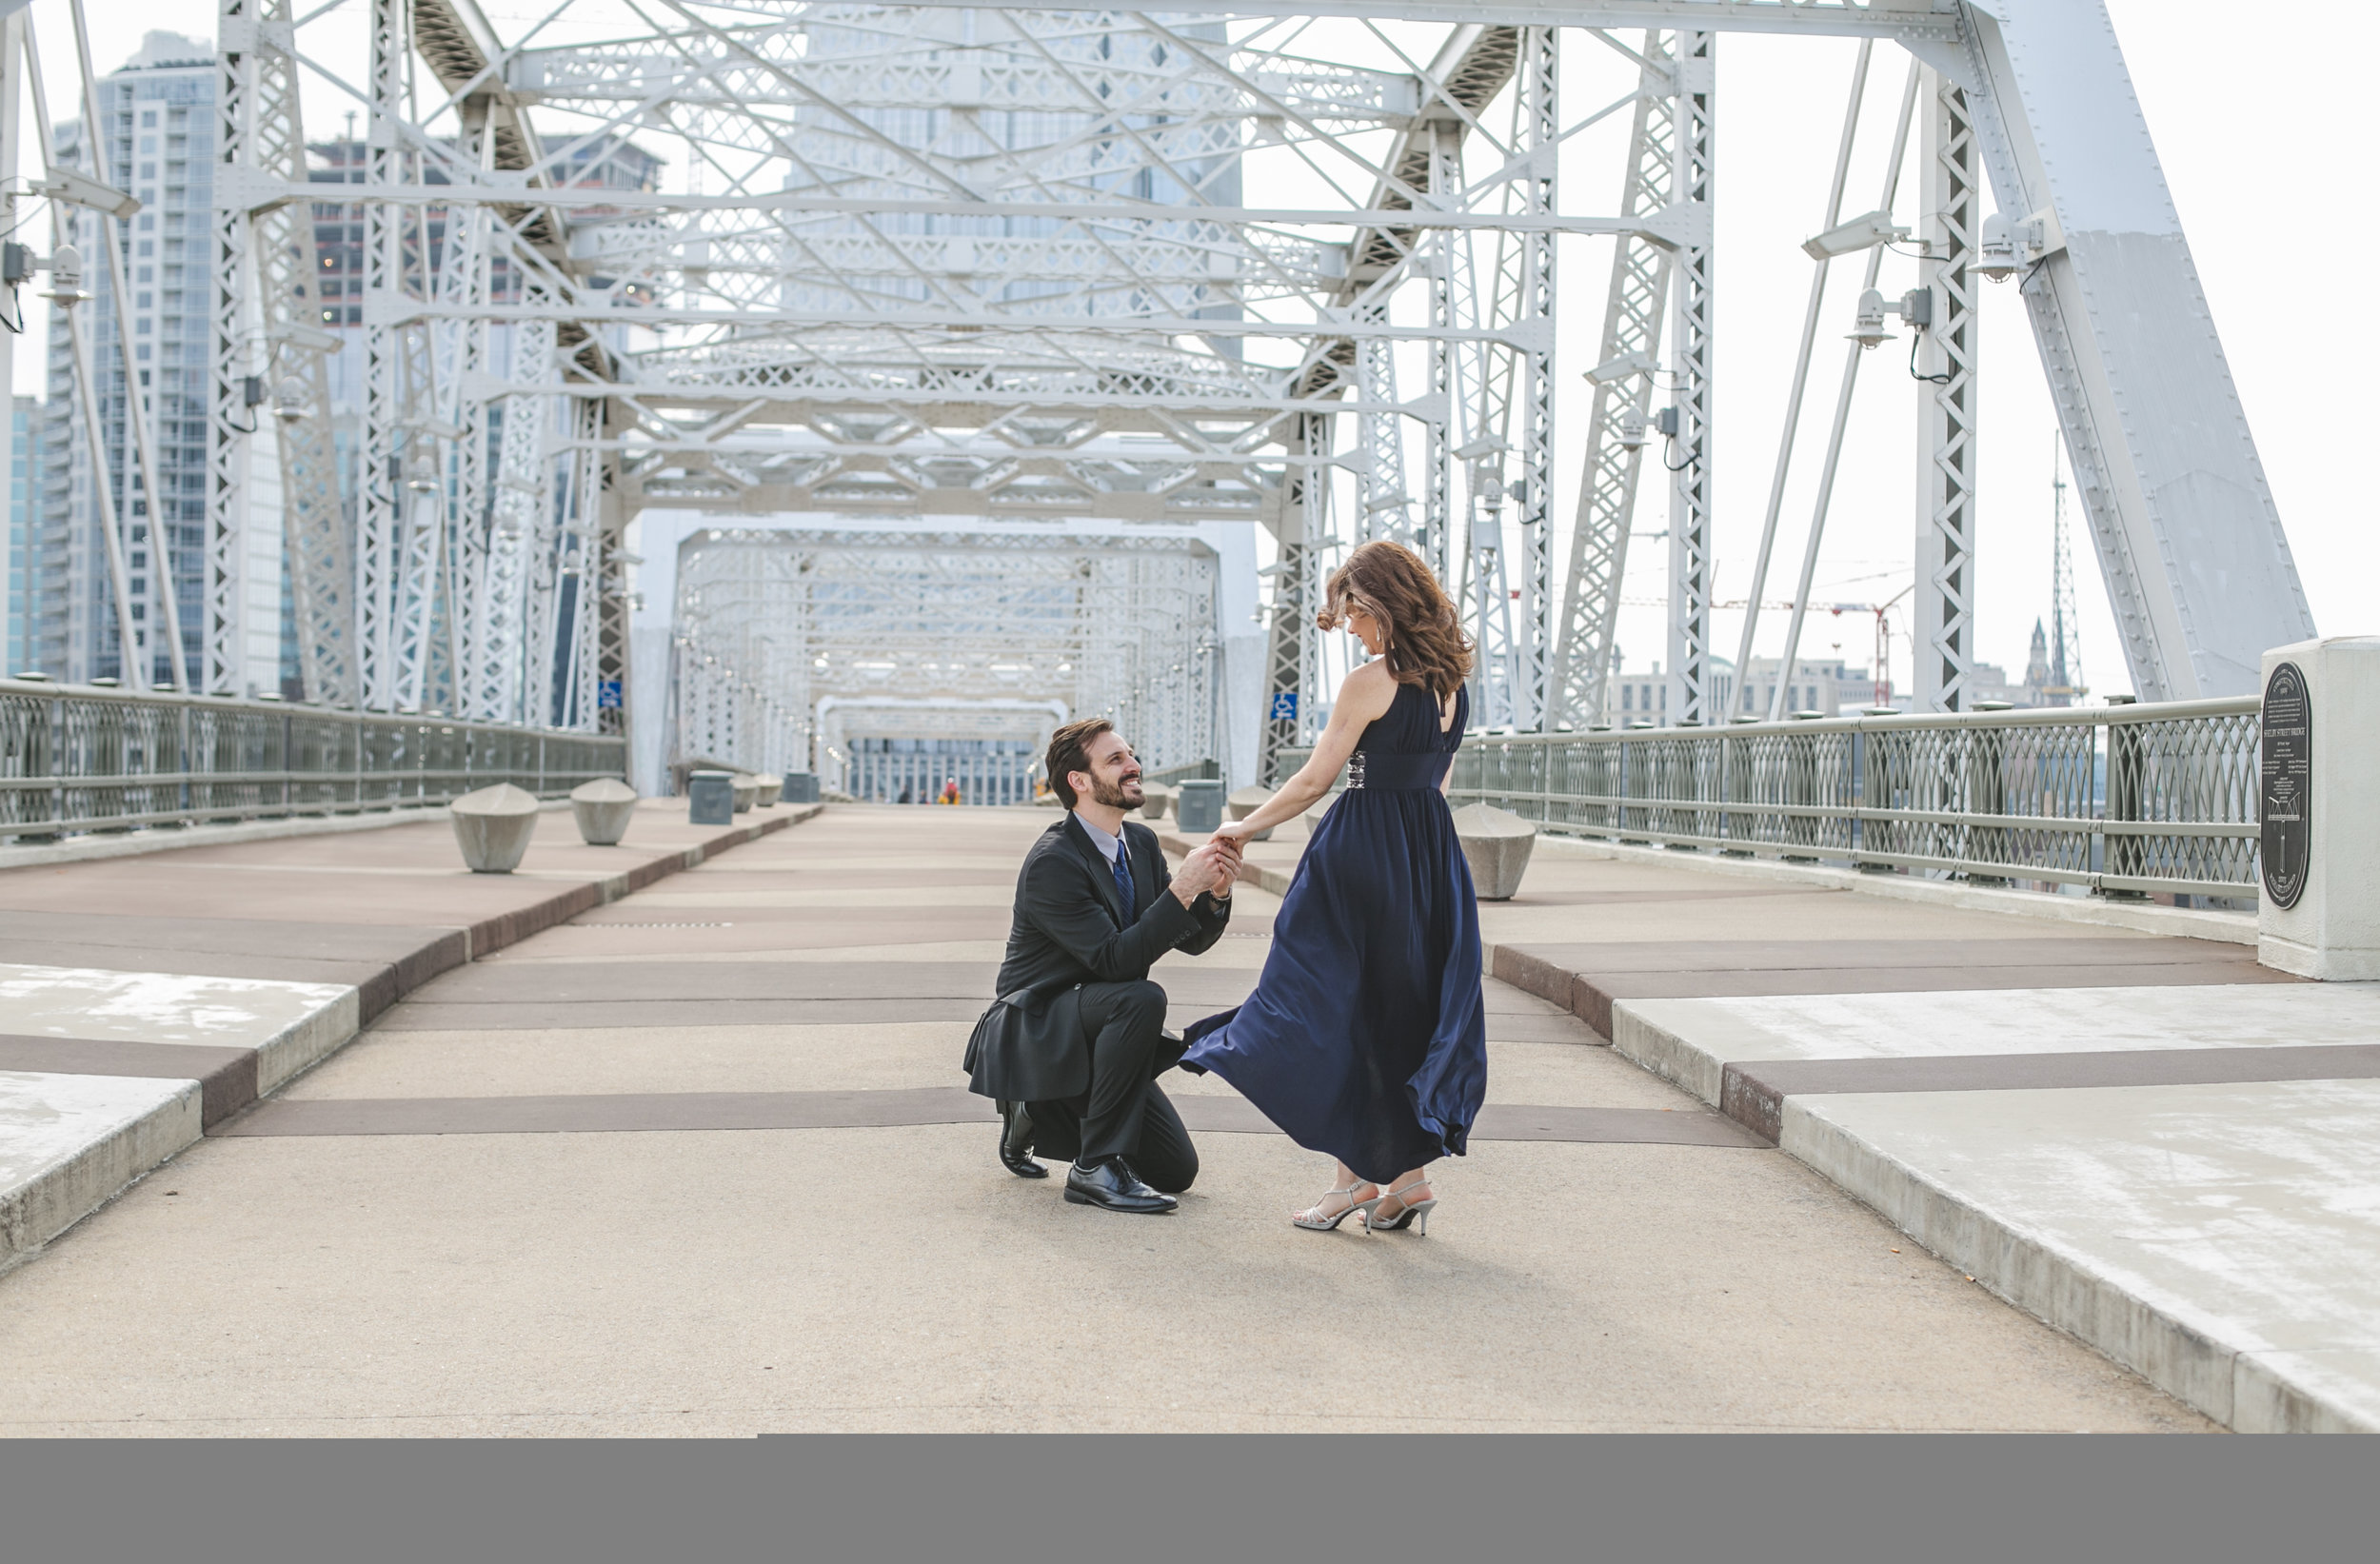 Phil and Rebecca at the Shelby Street Bridge, Nashville, TN